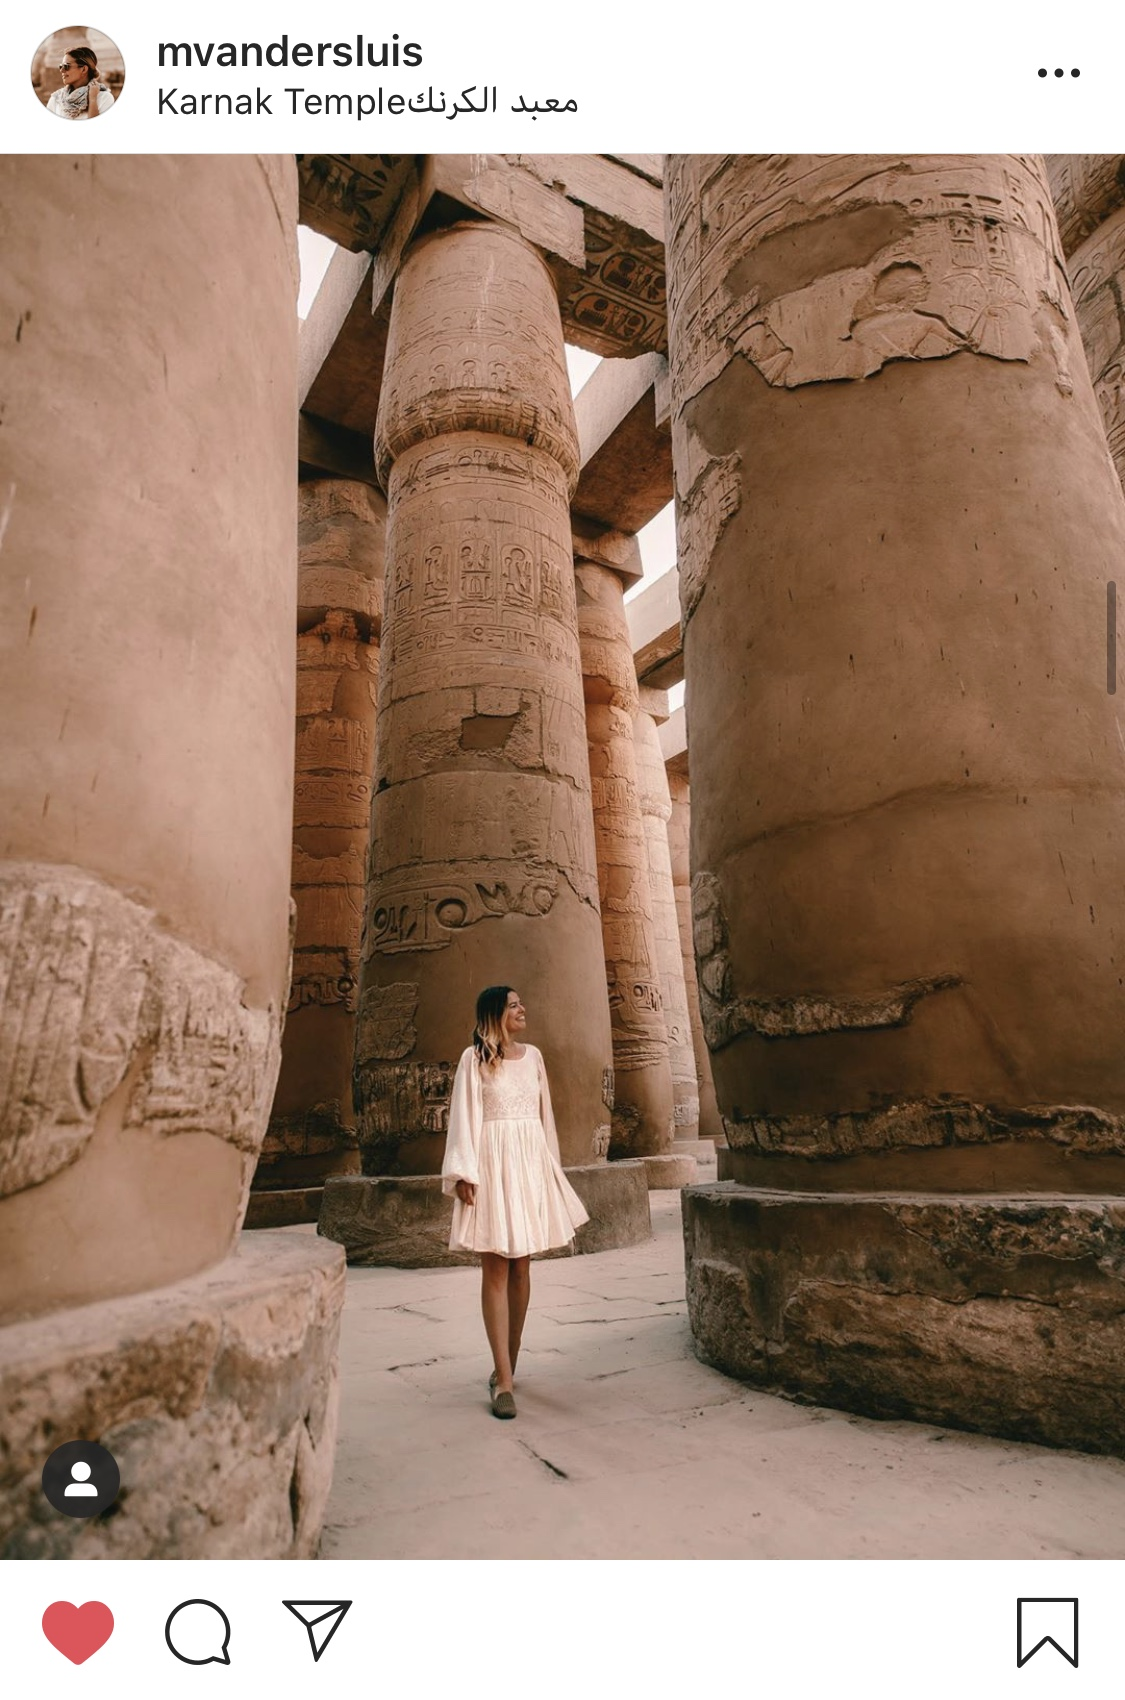 A woman walking through Karnak Temple in Luxor